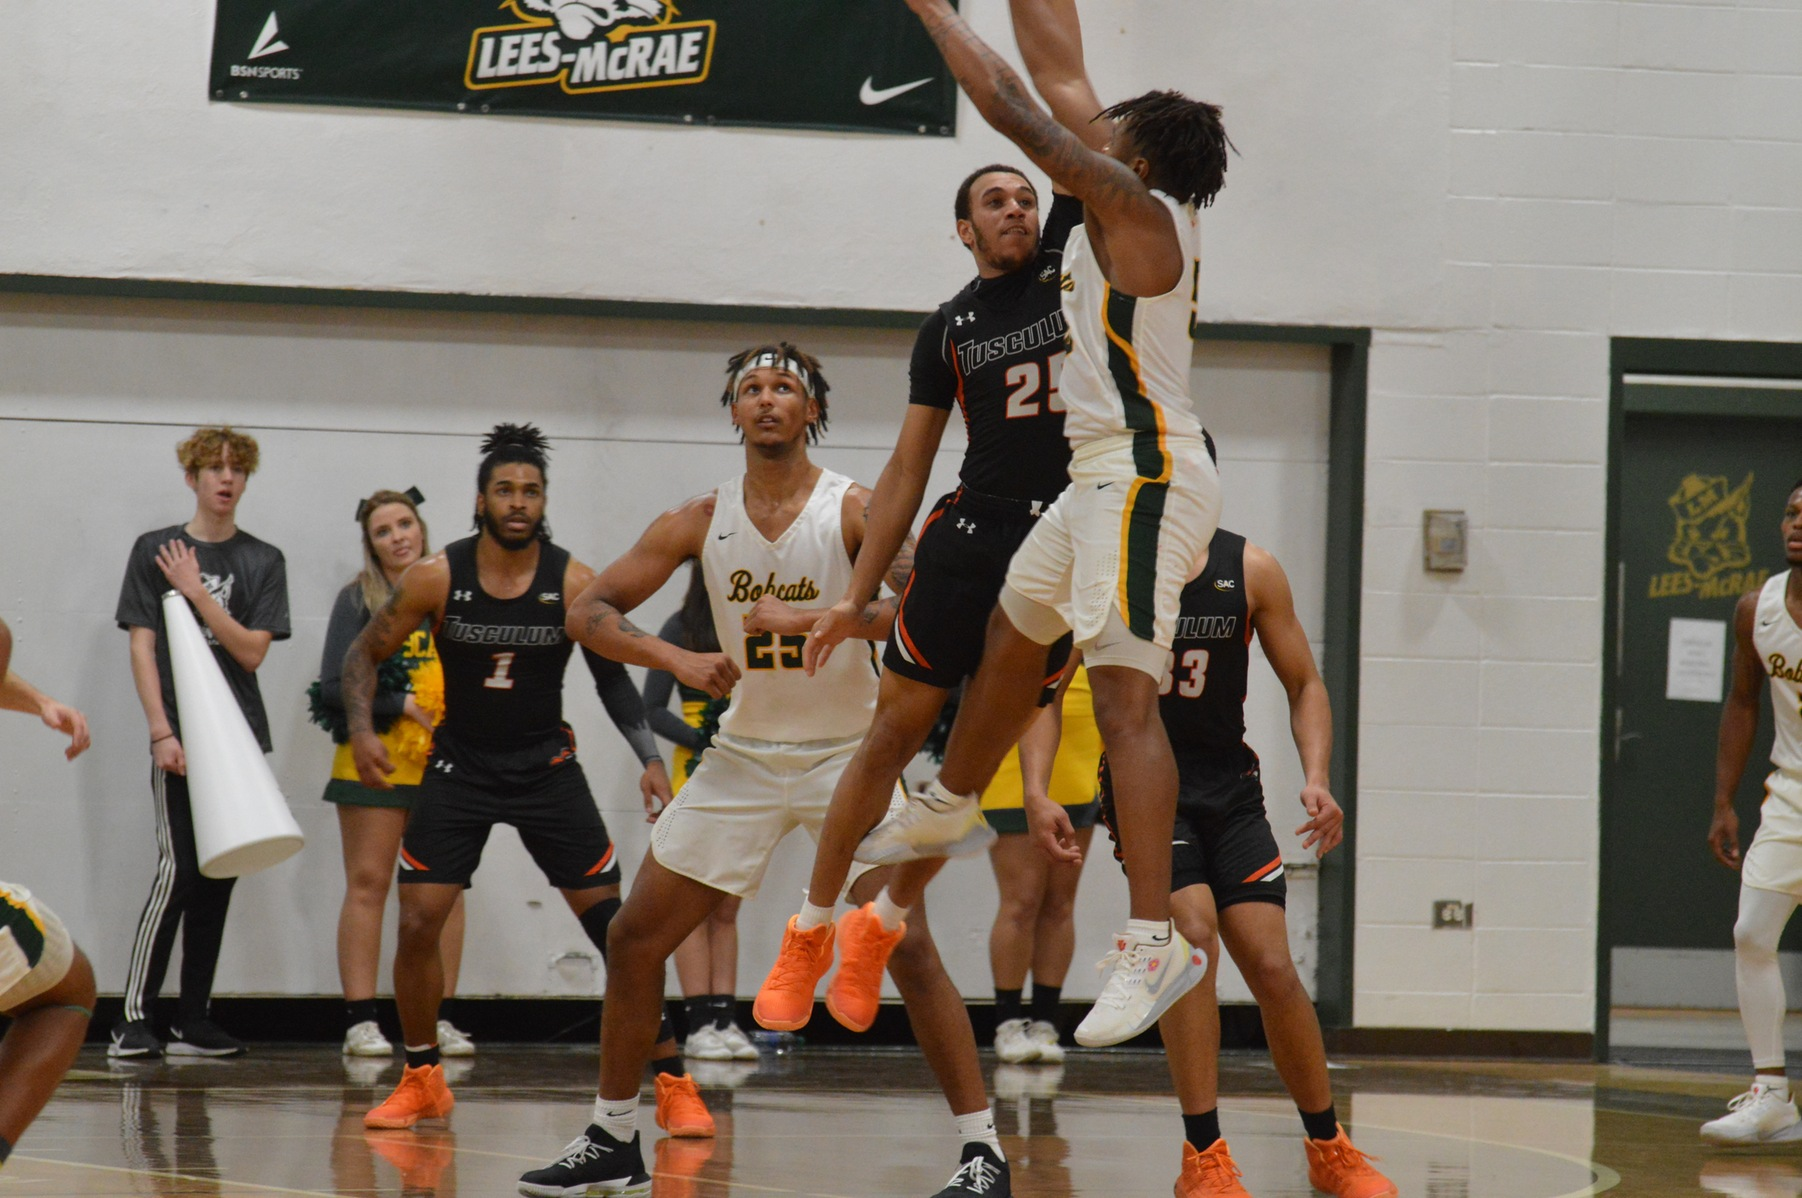 Pioneers suffer first road loss in 87-75 setback at Lees-McRae